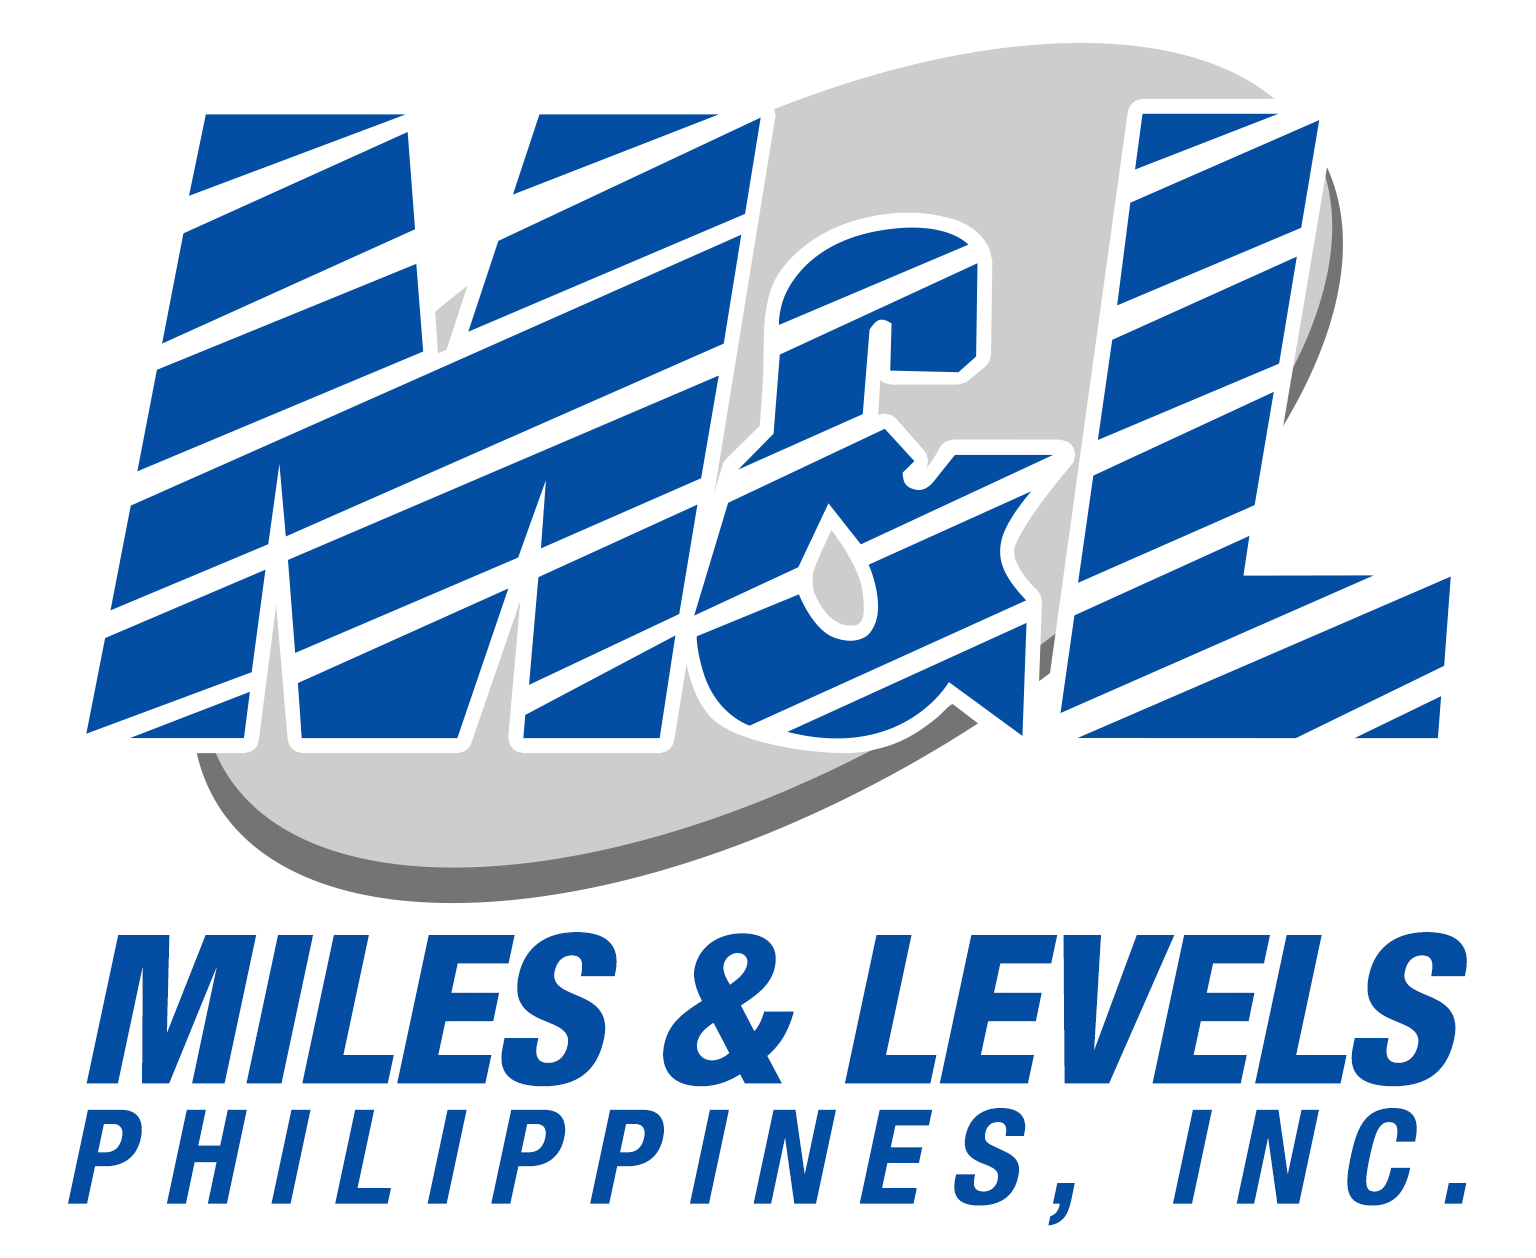 Miles and Levels Philippines, Inc.